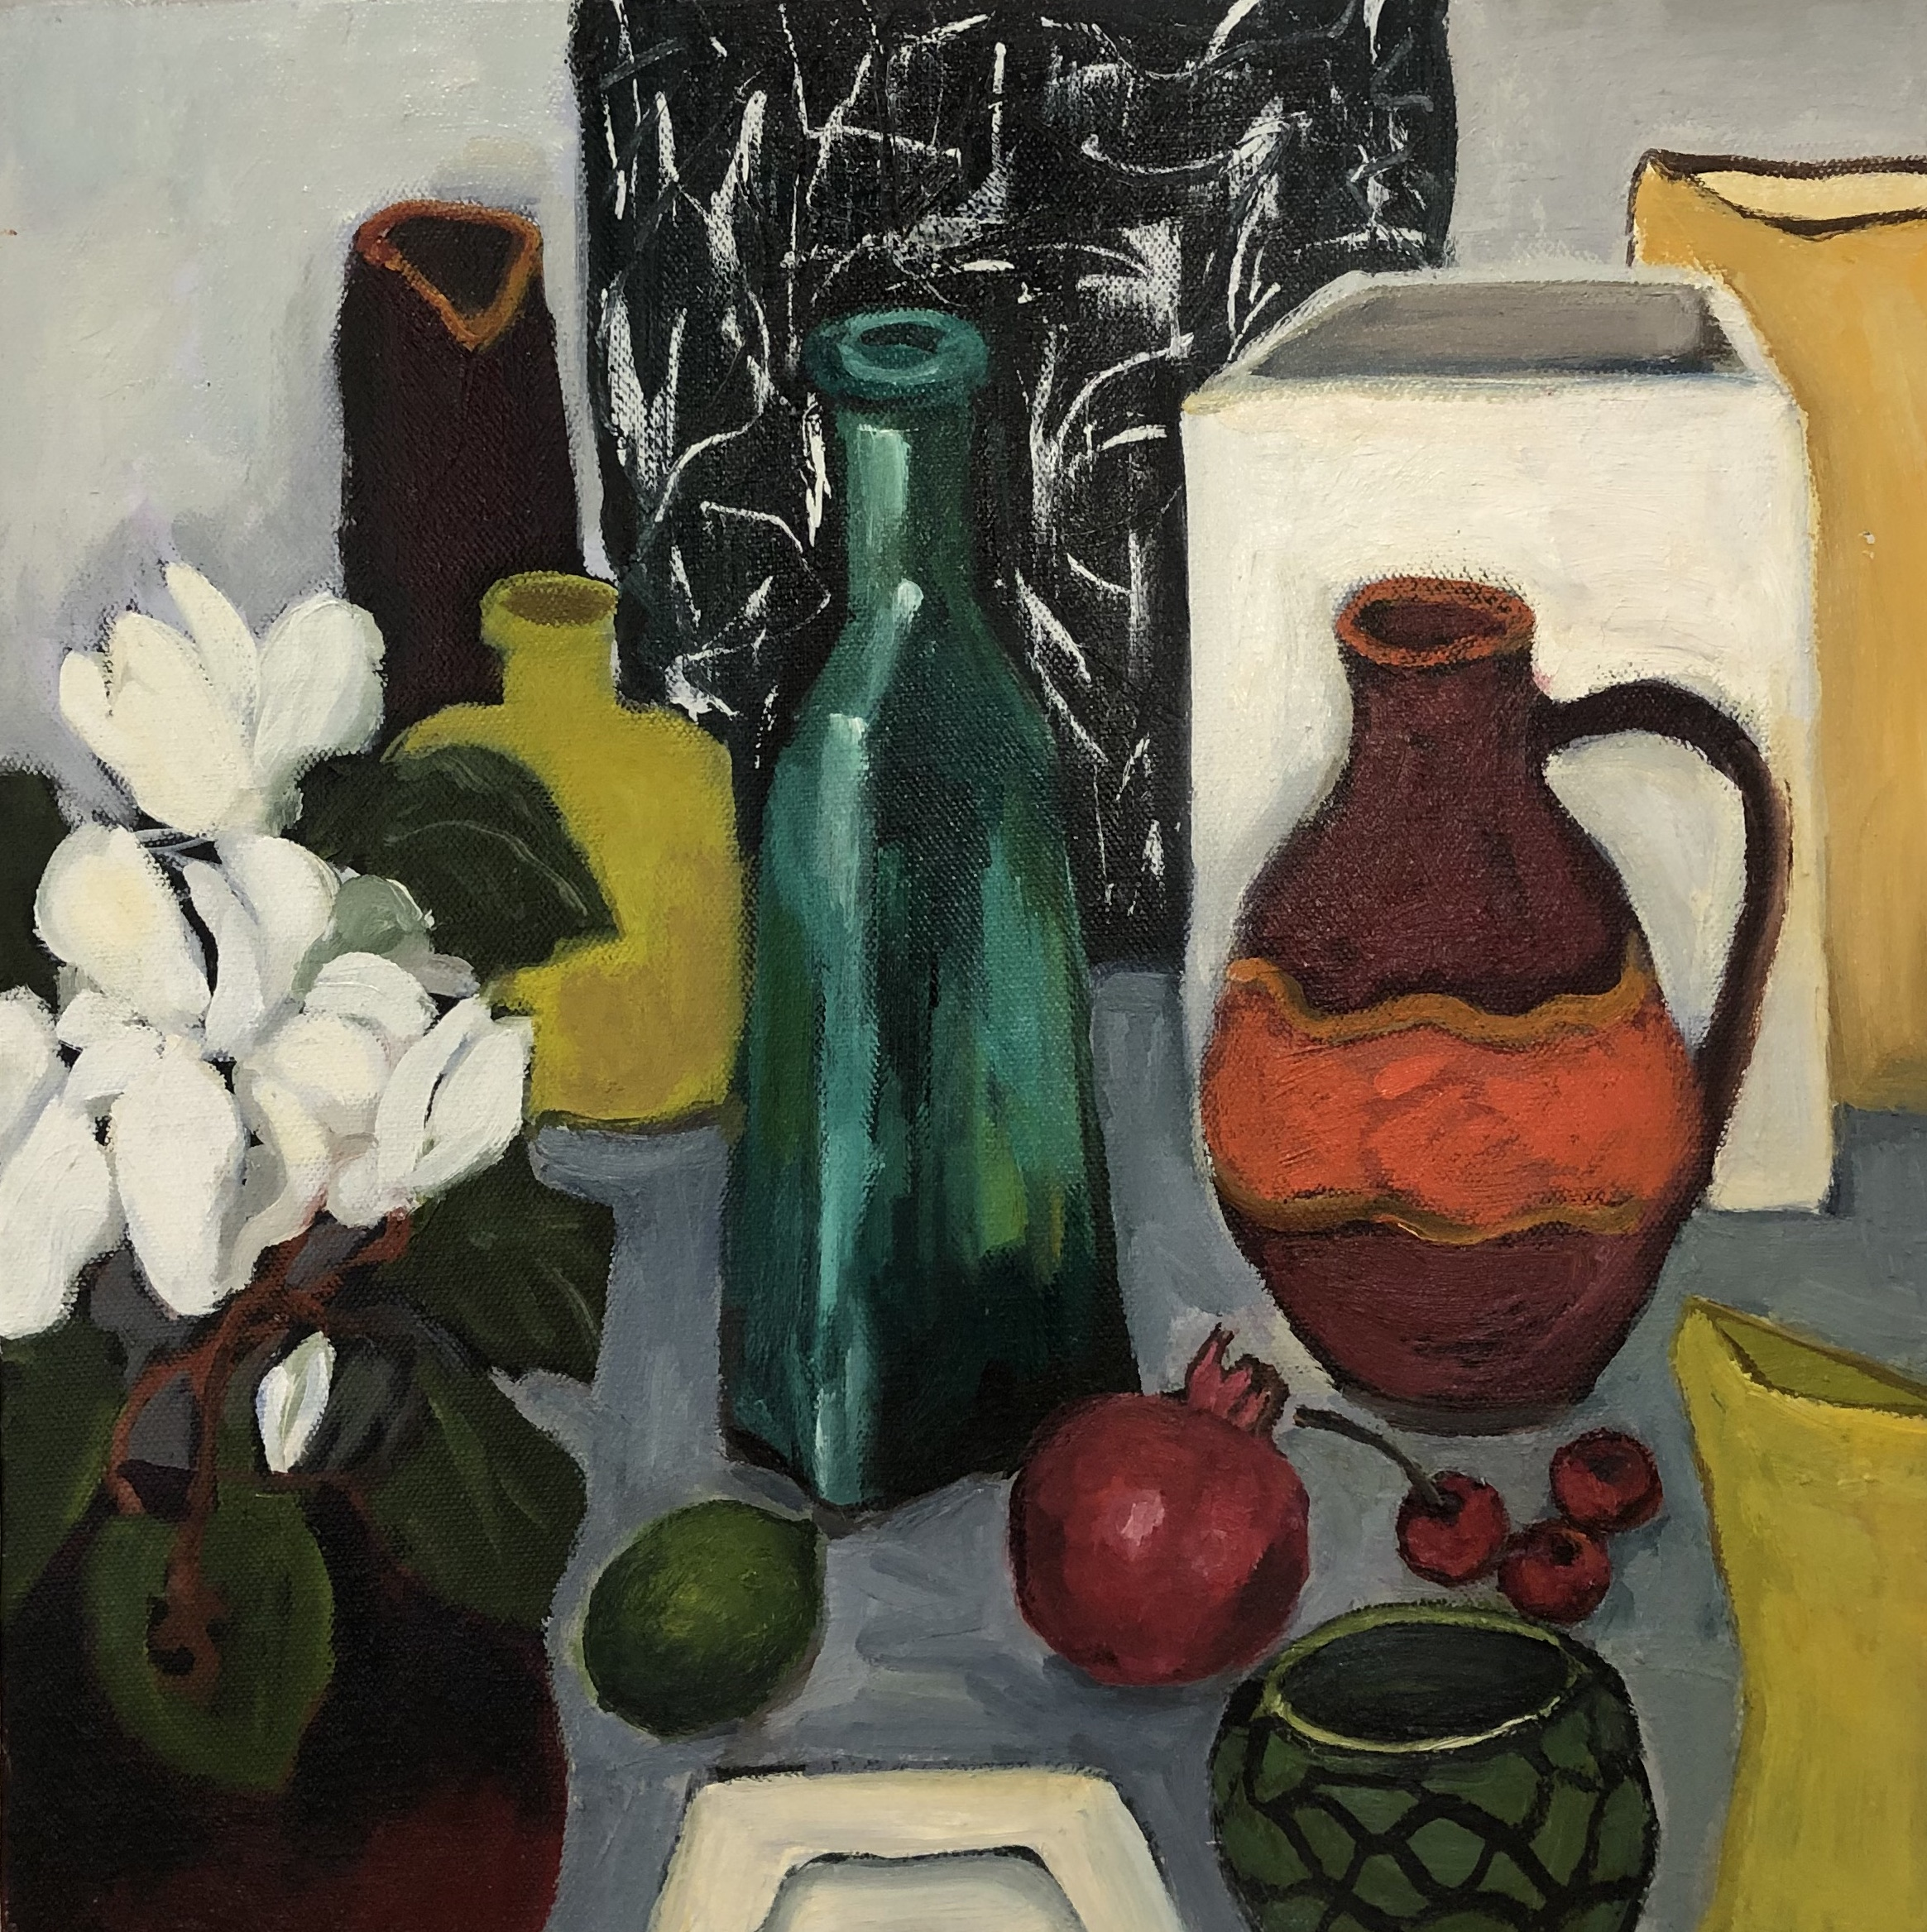 Lydia Miller, Still-Life with green bottle, 2018 oil on canvas, 40 x 40cm $450.00 AVAILABLE contact info@gallery139.com.au